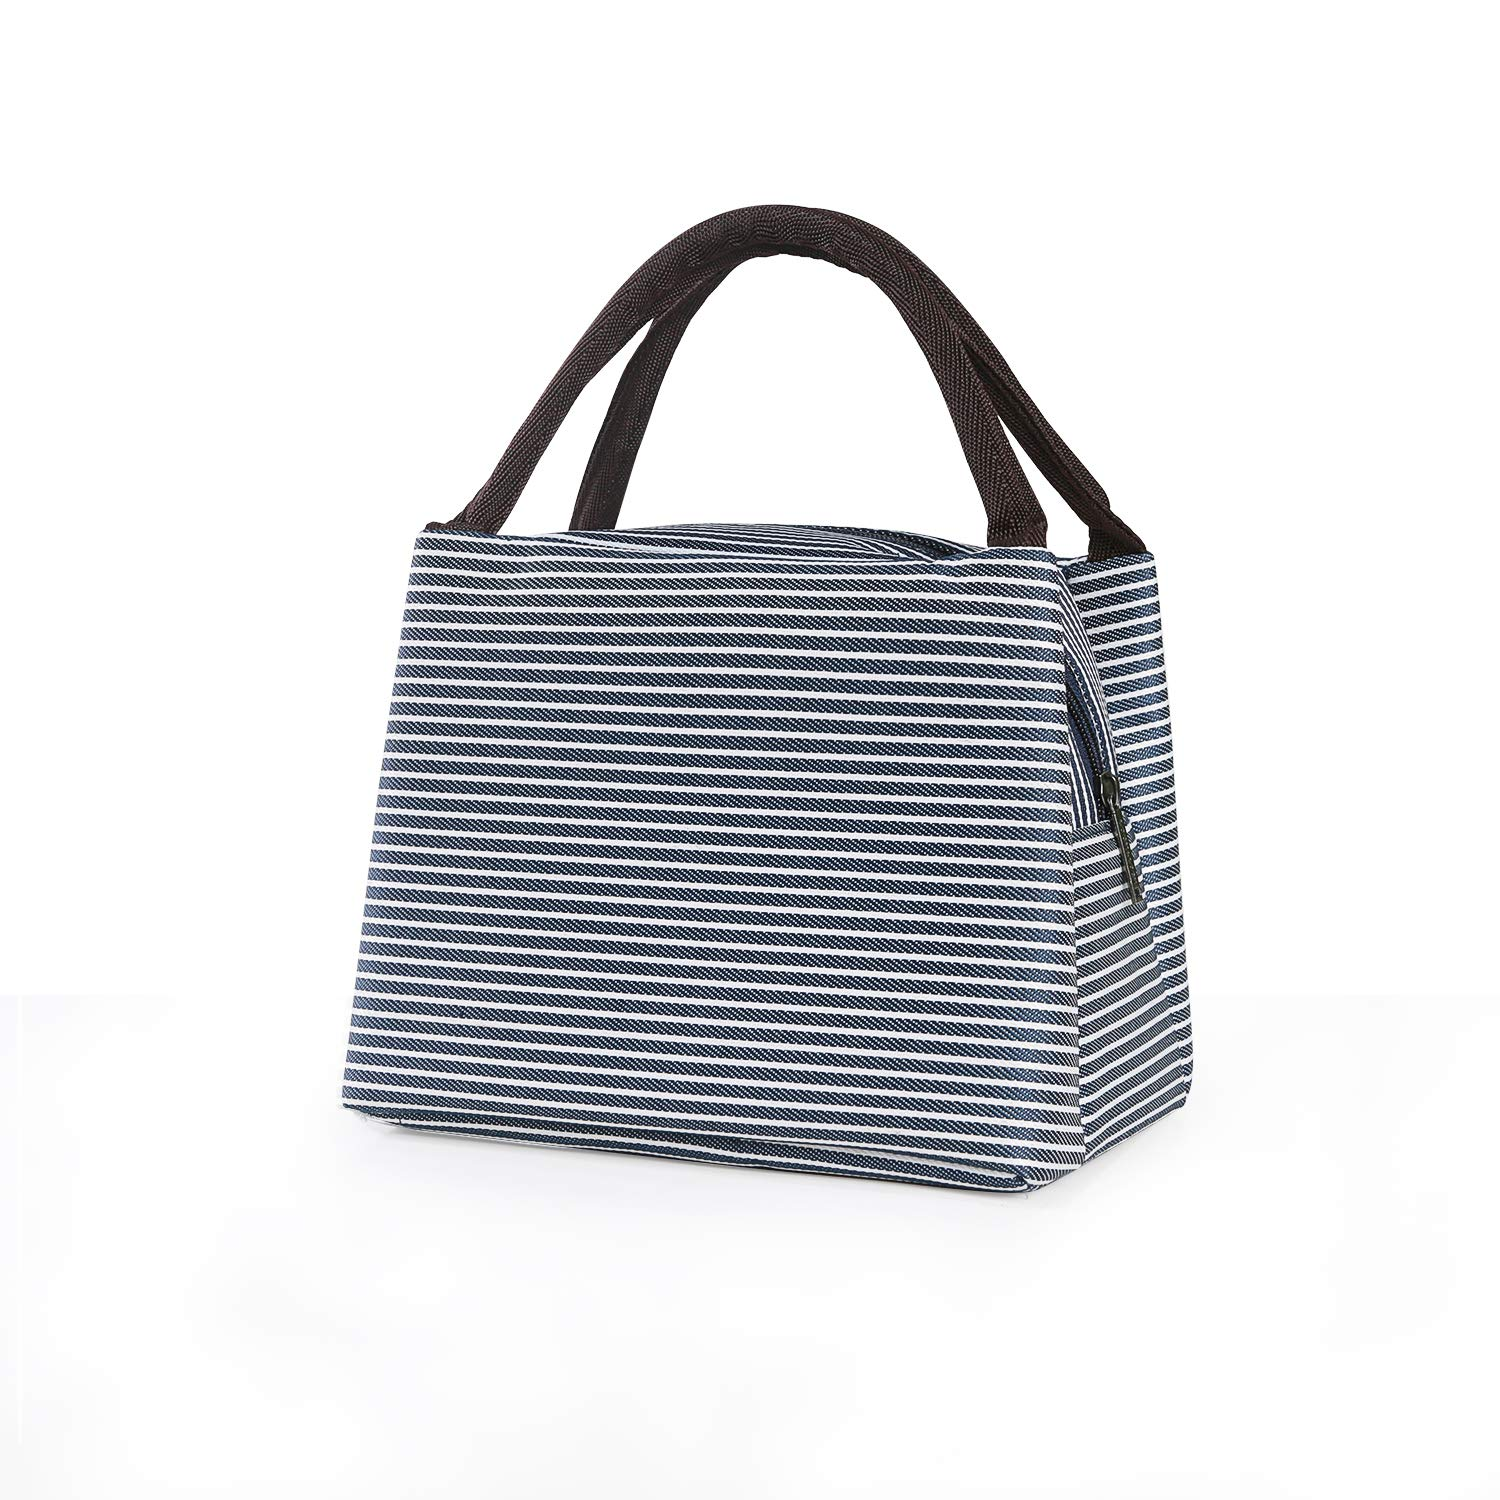 Buzazz Lunch Bag Picnic Cool Bag Lunch Box Bag for Students,Office,Picnic Tote Cooler Travel Bag Lunch Organizer for Adults or Kids (Blue) (Blue White Stripes)